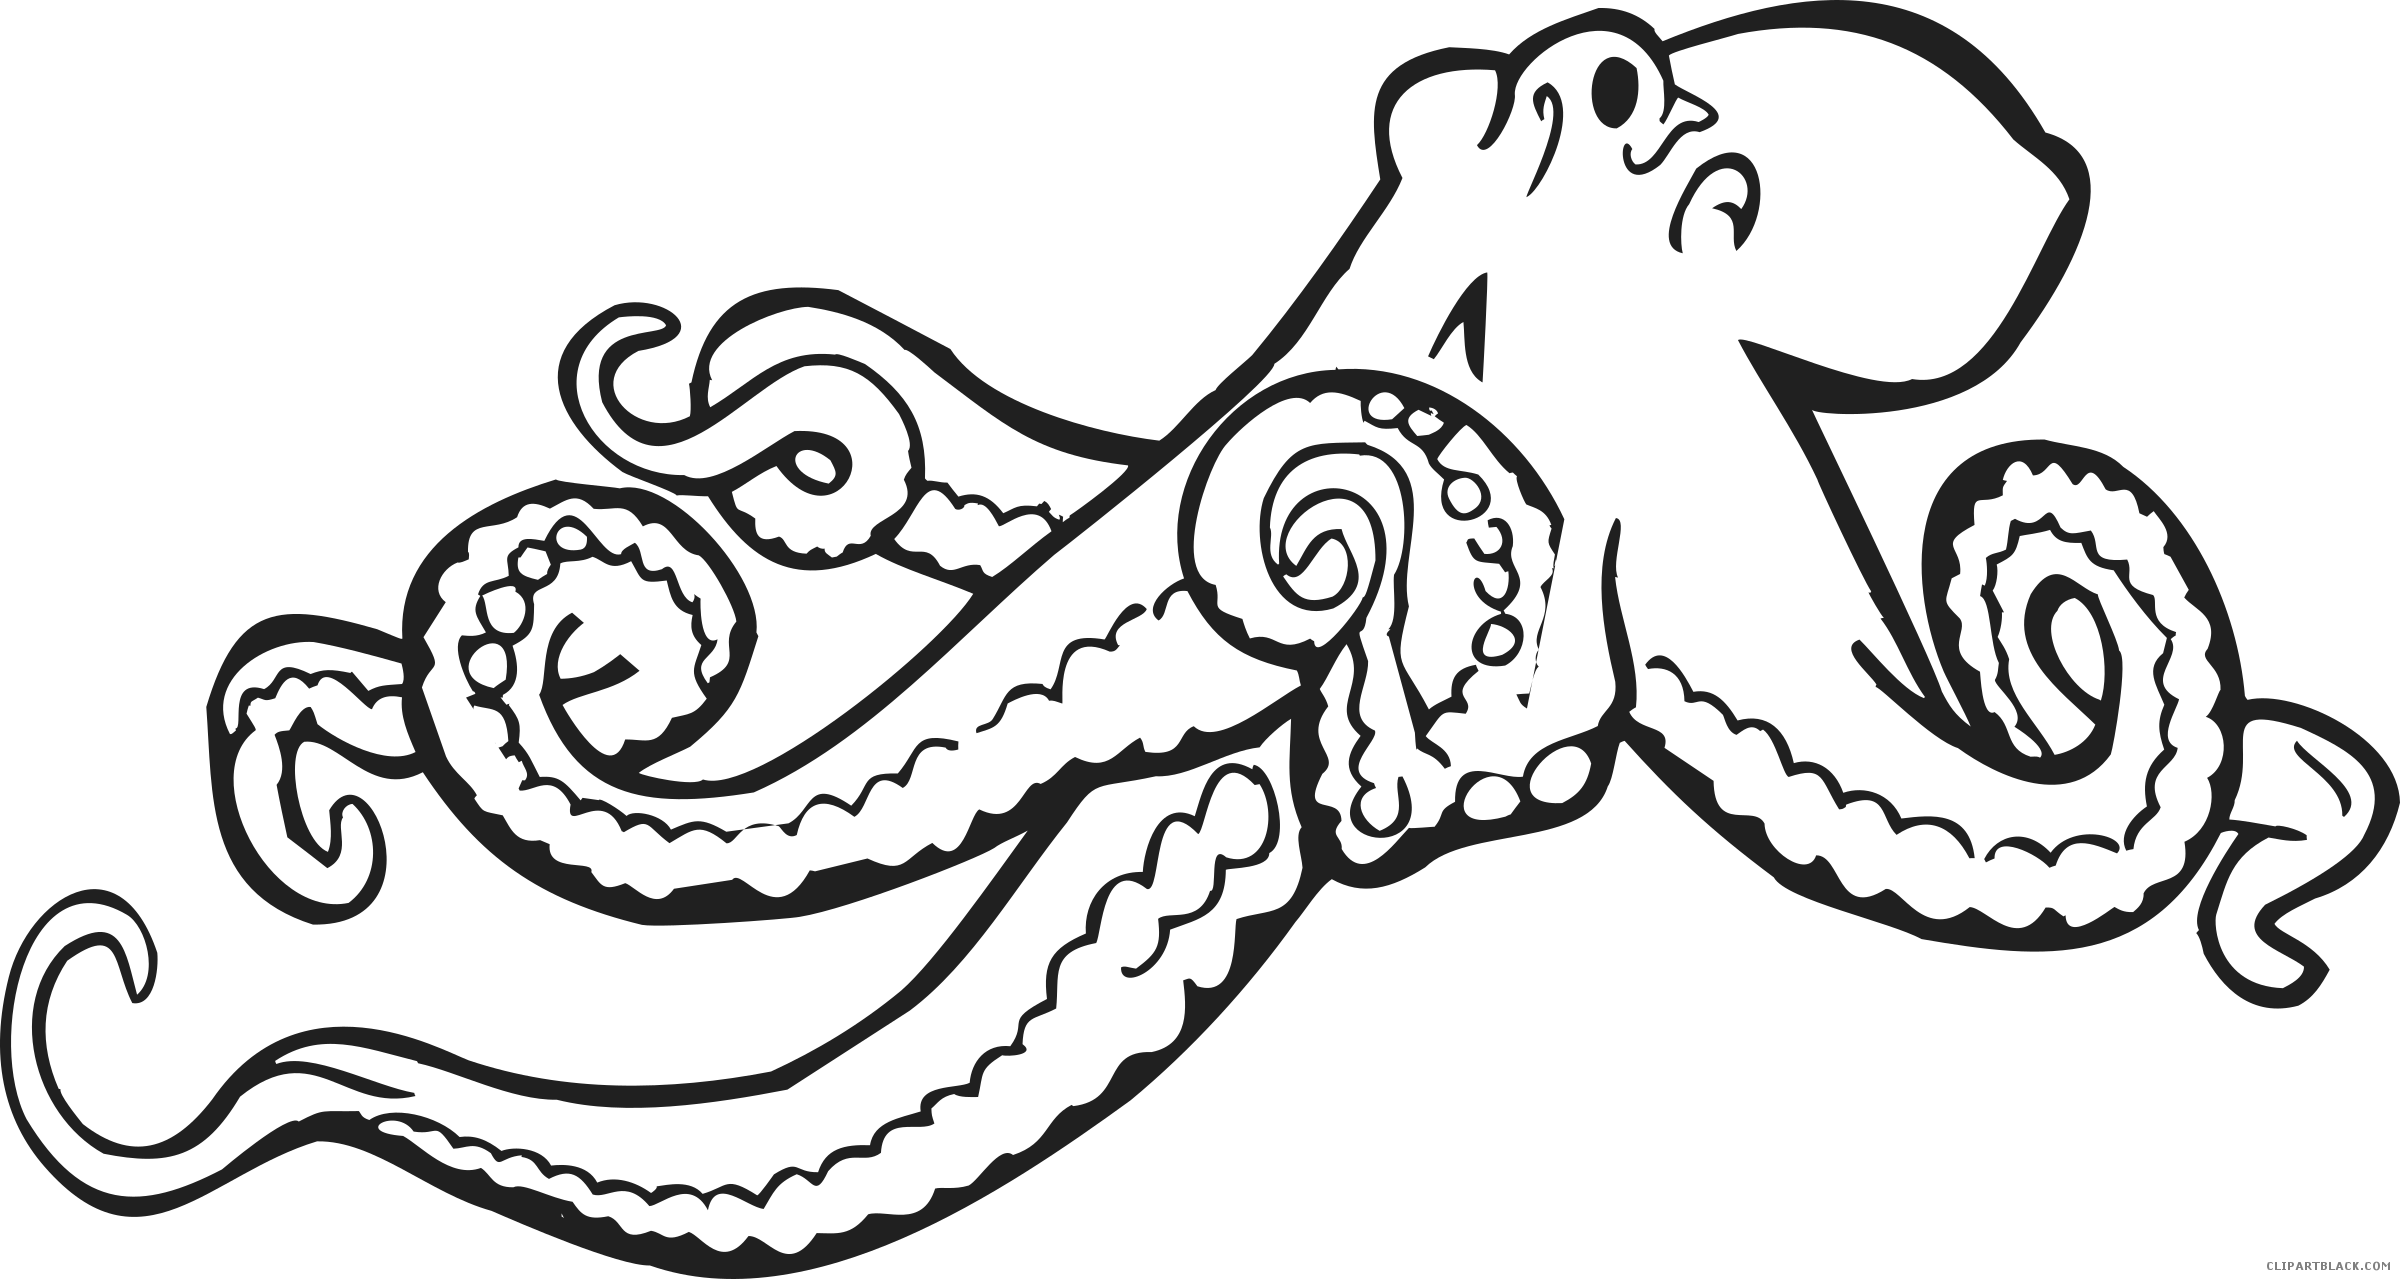 Coloring book clipart image royalty free library Octopus Coloring Book Clipart - ClipartBlack.com image royalty free library